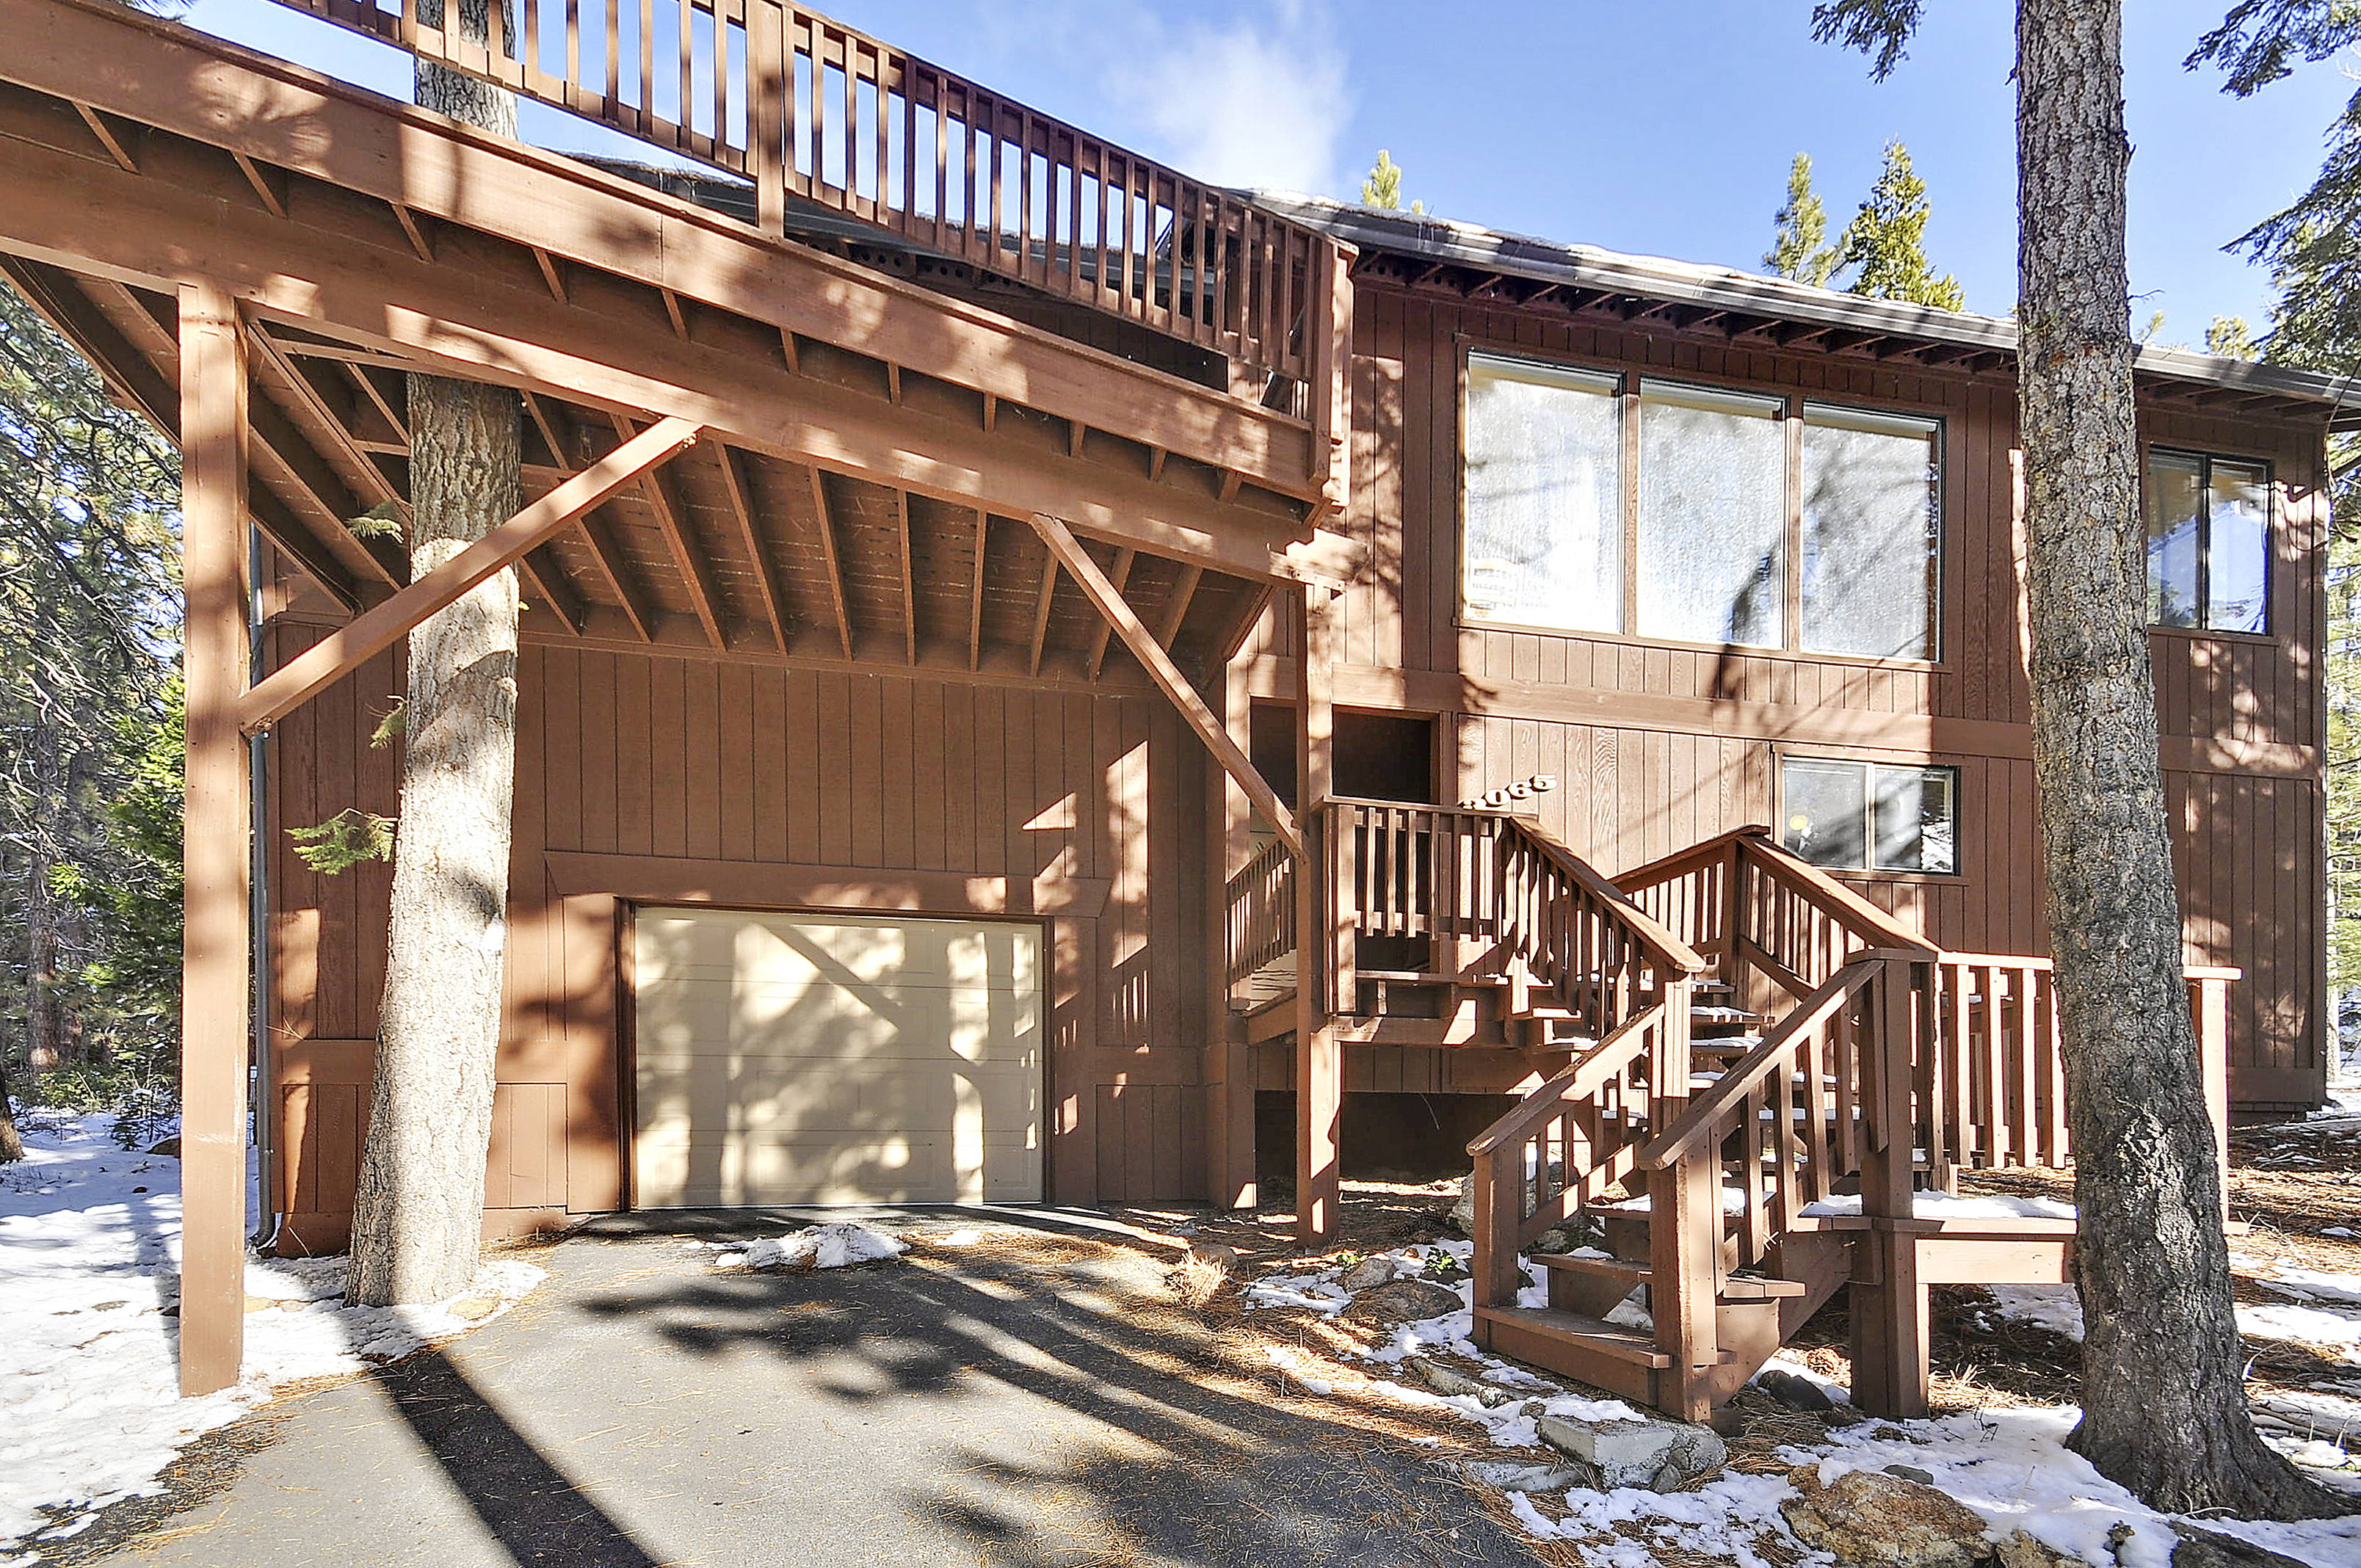 Home for rent in Tahoe City with 3 bedrooms close to the Lake